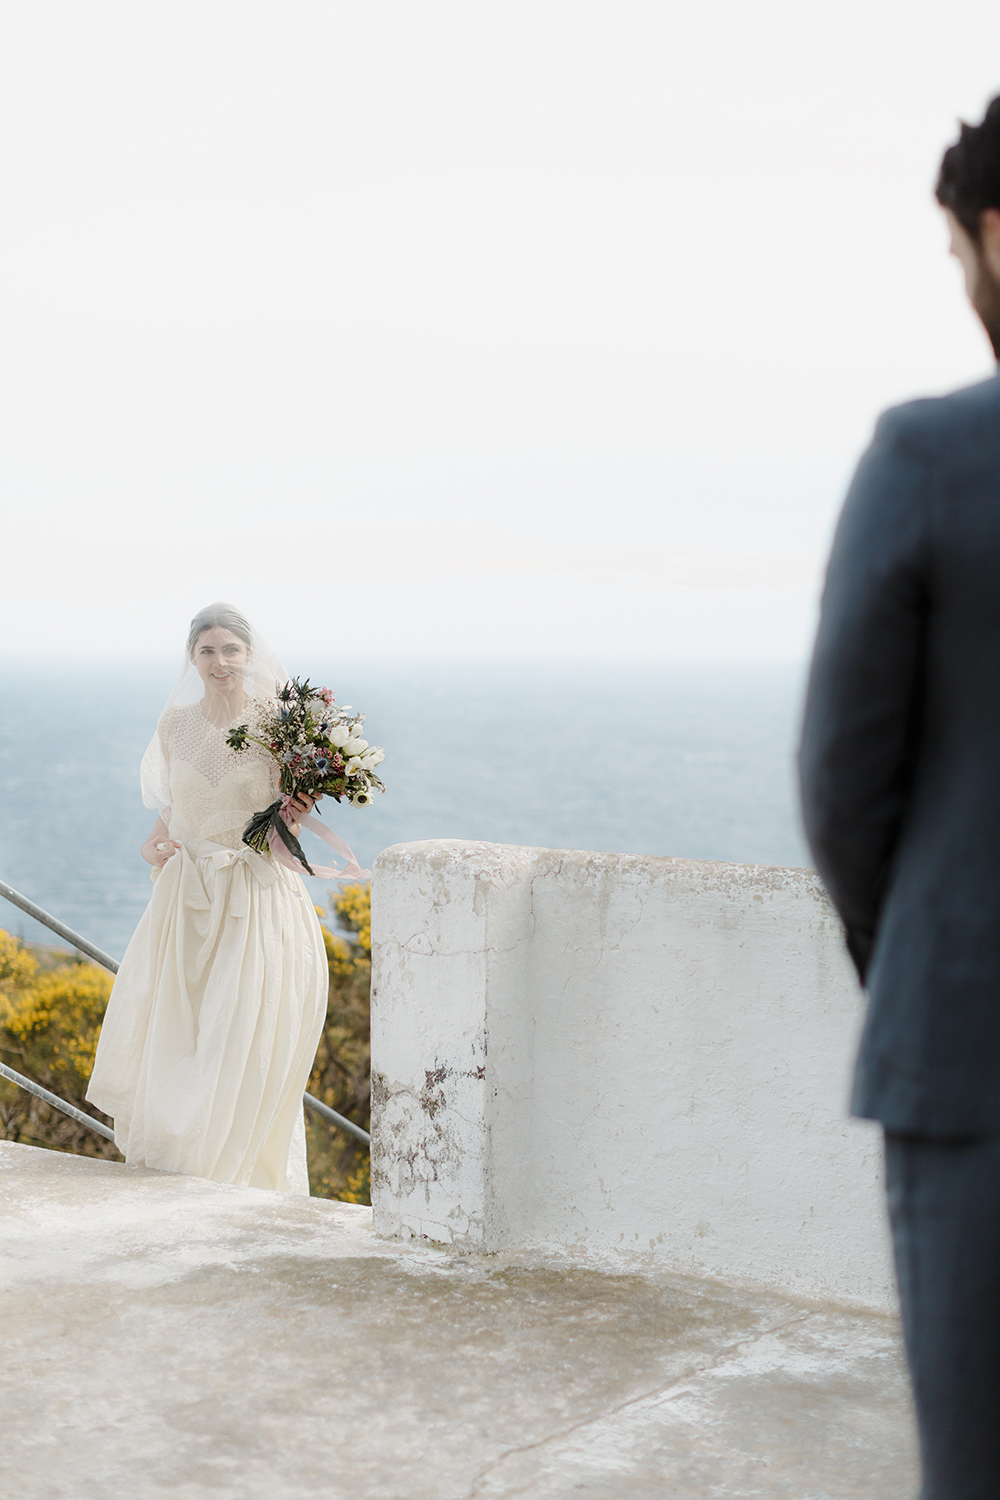 elopement - photo by Monica Leggio https://ruffledblog.com/italian-island-elopement-inspiration